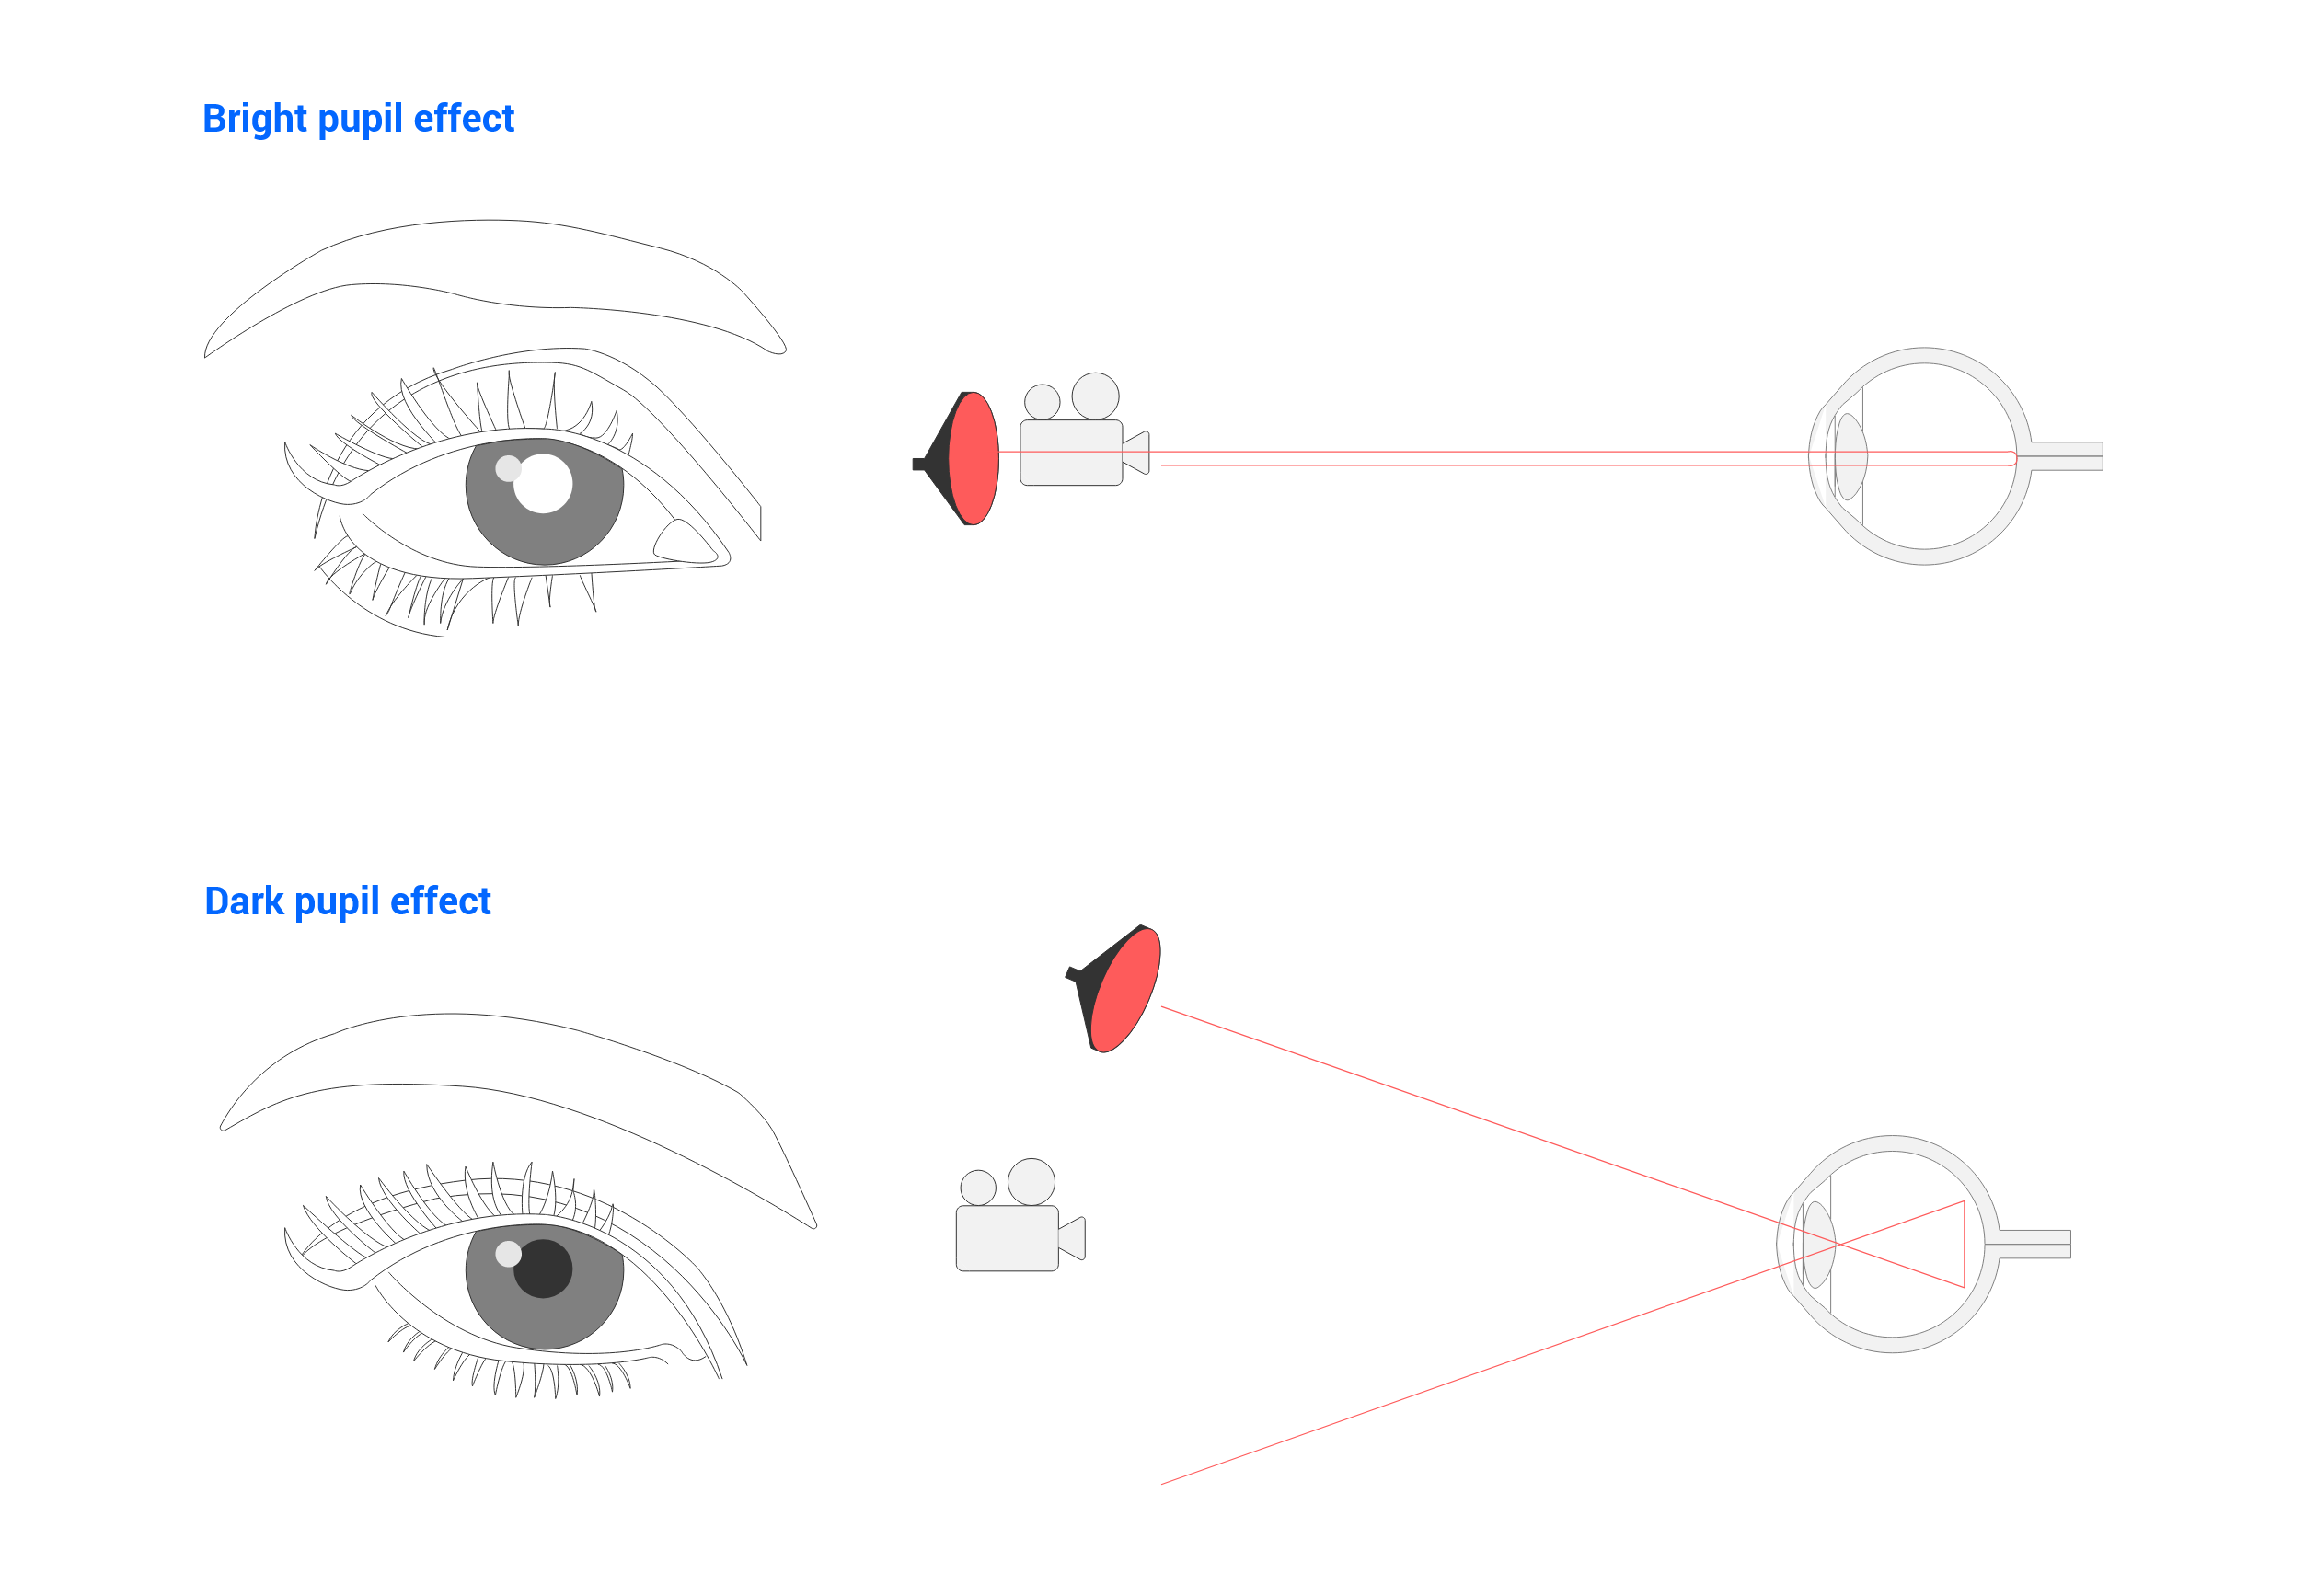 Bright and dark pupil systems graph of eye tracking